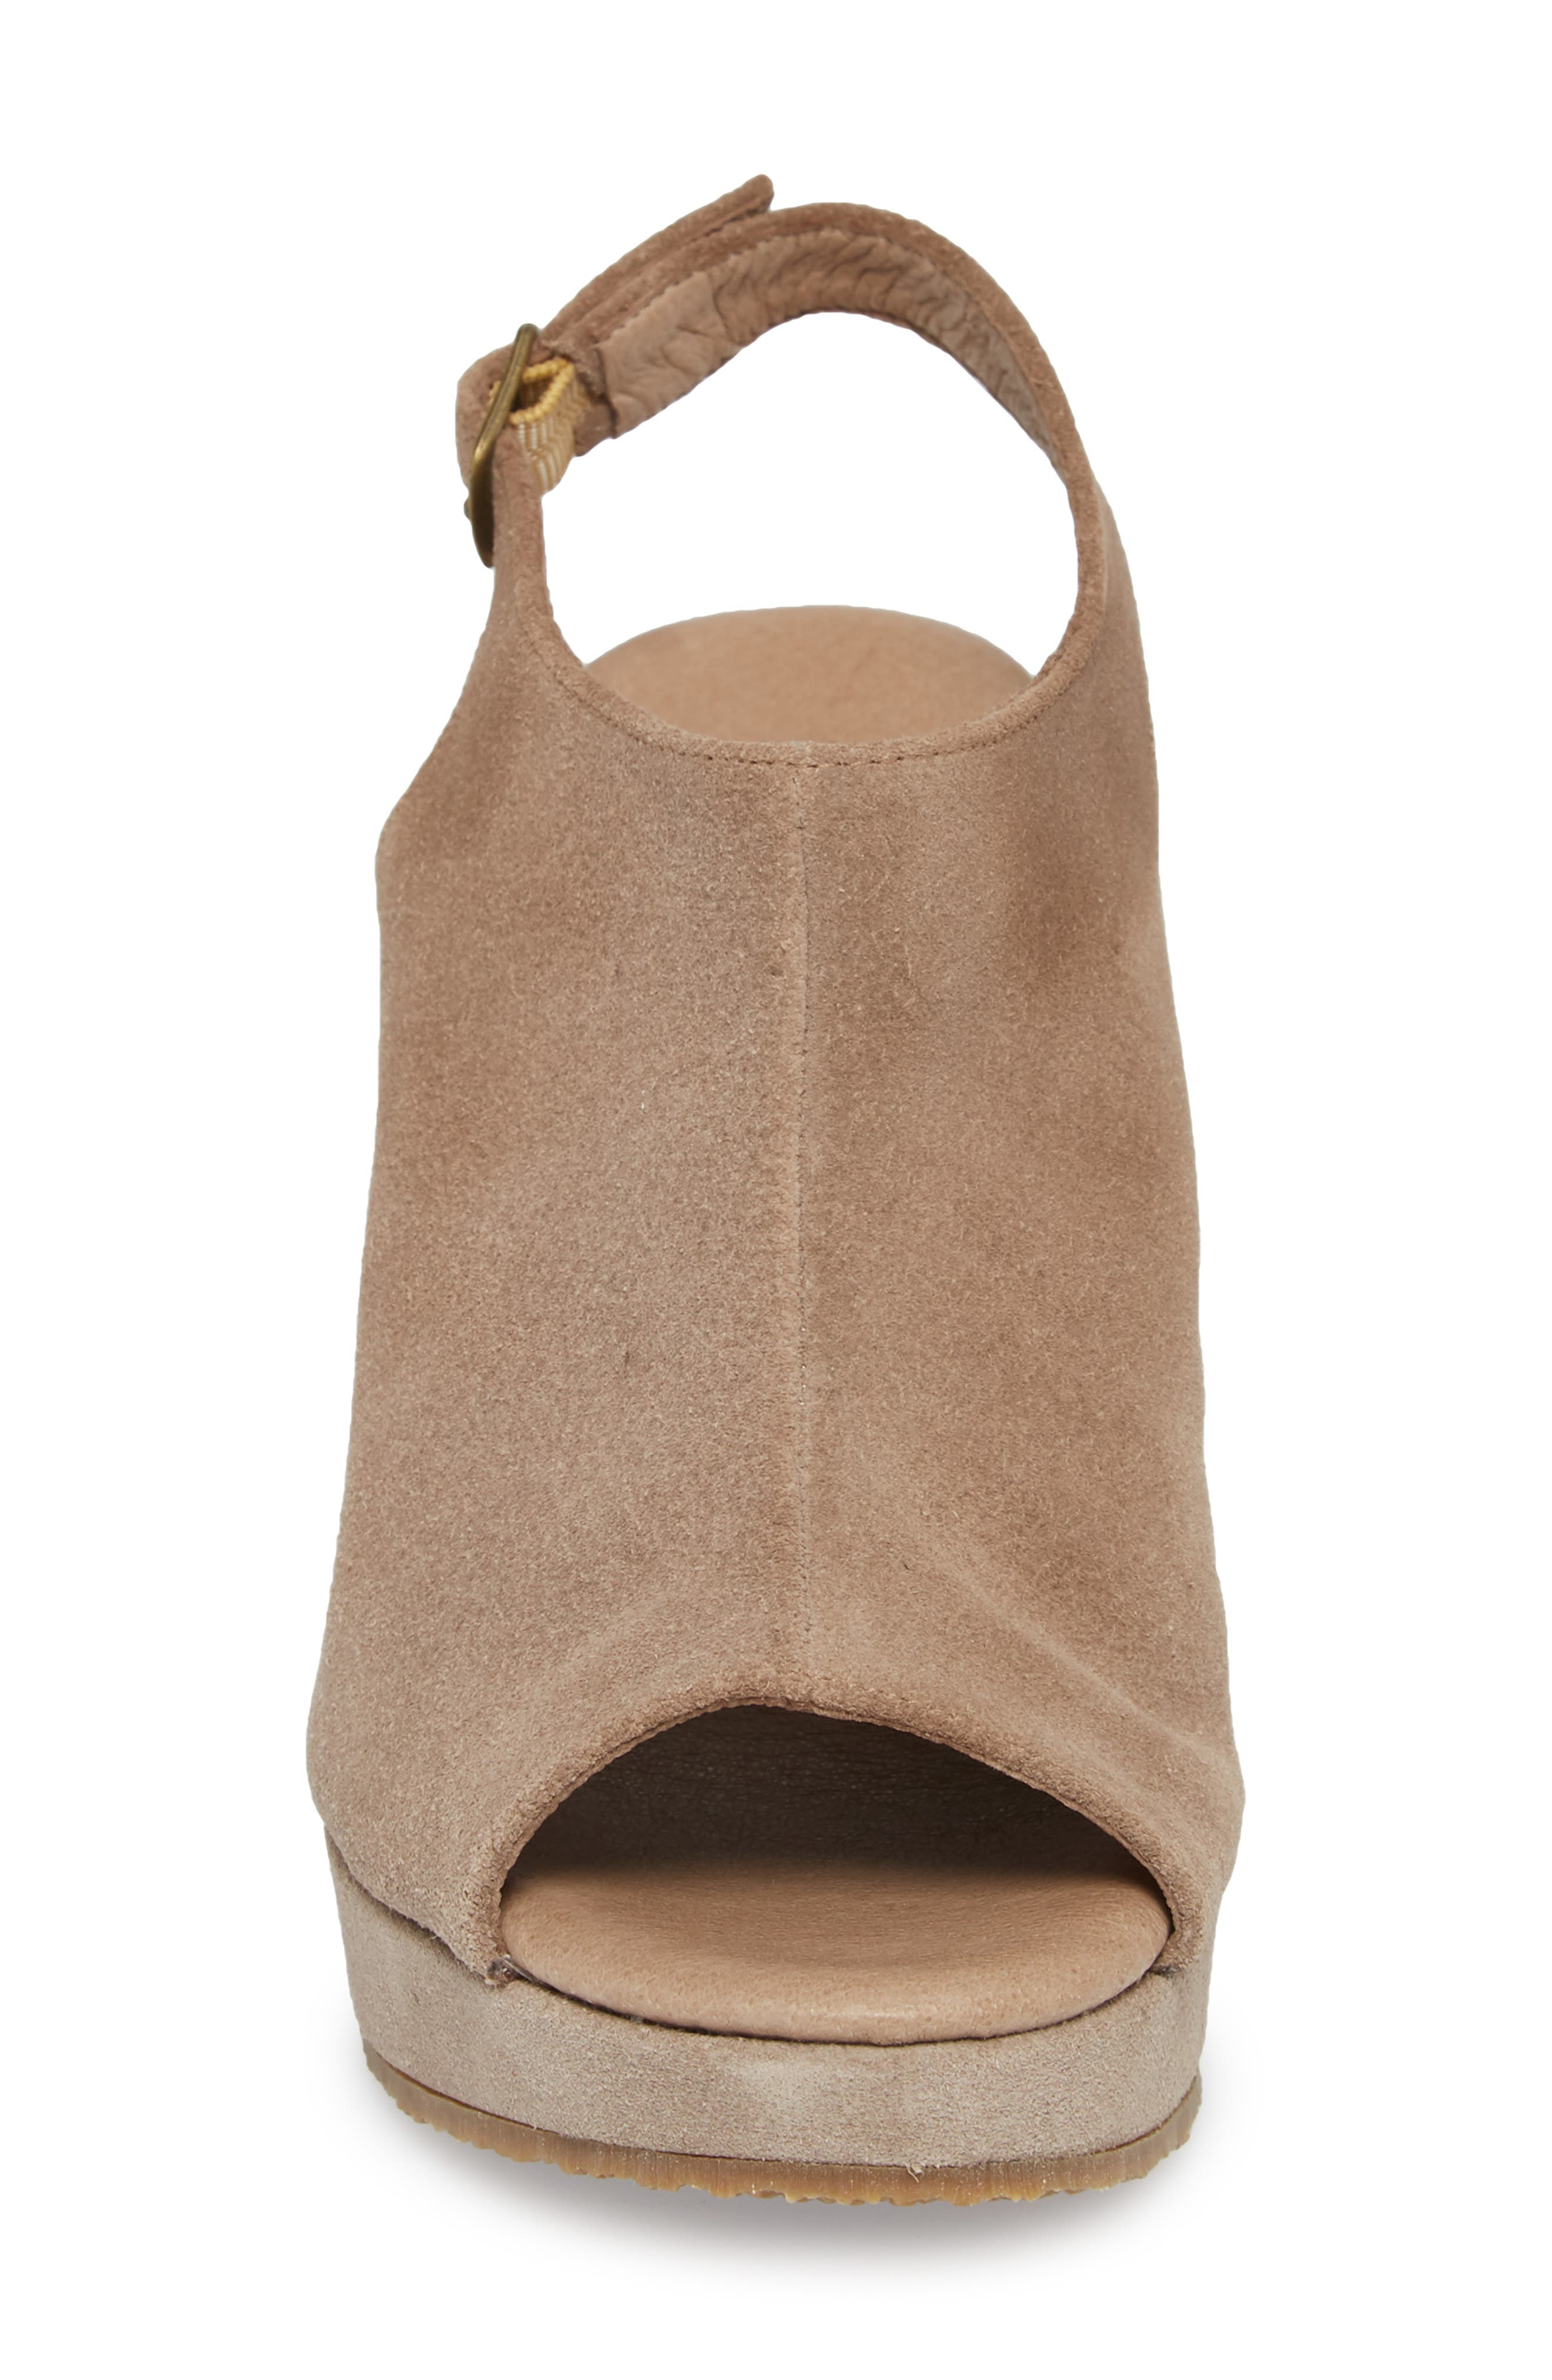 'Wellesley' Sandal,                             Alternate thumbnail 4, color,                             Taupe Suede